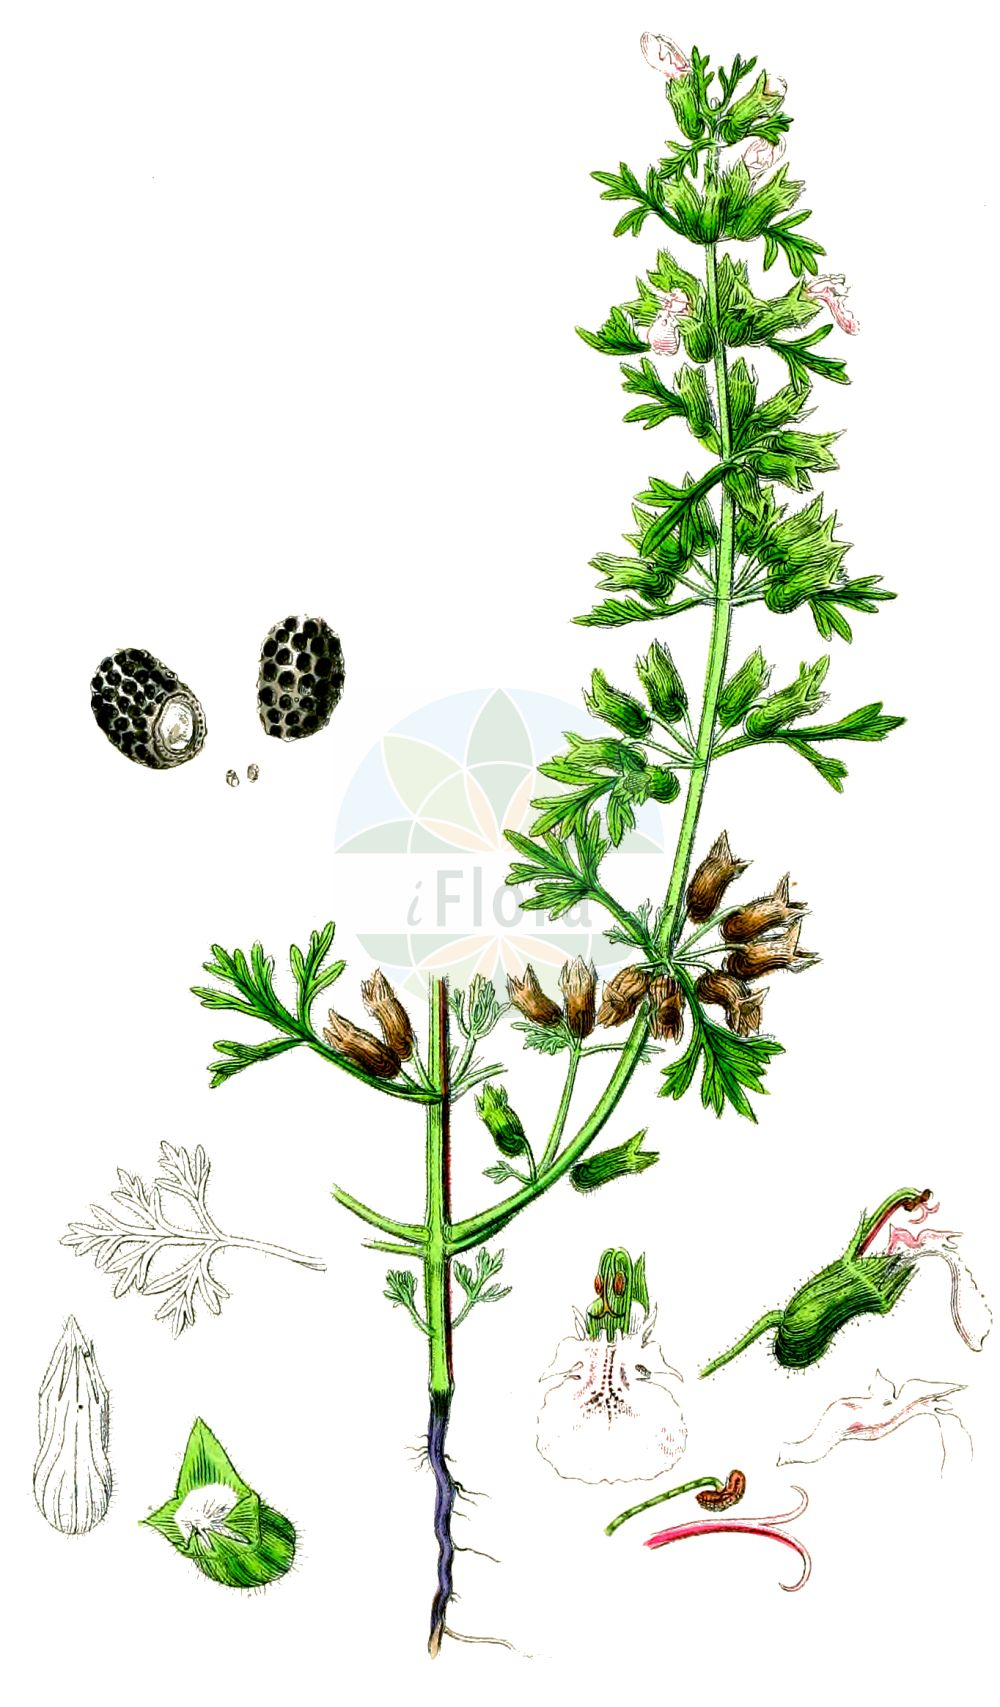 Historische Abbildung von Teucrium botrys (Trauben-Gamander - Cut-leaved Germander). Das Bild zeigt Blatt, Bluete, Frucht und Same. ---- Historical Drawing of Teucrium botrys (Trauben-Gamander - Cut-leaved Germander).The image is showing leaf, flower, fruit and seed.(Teucrium botrys,Trauben-Gamander,Cut-leaved Germander,Botrys chamaedryoides,Chamaedrys botrys,Chamaedrys laciniata,Monochilon bipinnatifidus,Scorodonia botrys,Teucrium alpinum,Teucrium botrydium,Teucrium botrys,Teucrium chamaedryoides,Trixago botrys,Trauben-Gamander,Feld-Gamander,Cut-leaved Germander,Cutleaf Germander,Teucrium,Gamander,Germander,Lamiaceae,Lippenbluetengewaechse,Lippenbluetler,Nettle family,Blatt,Bluete,Frucht,Same,leaf,flower,fruit,seed,Sowerby (1790-1813))